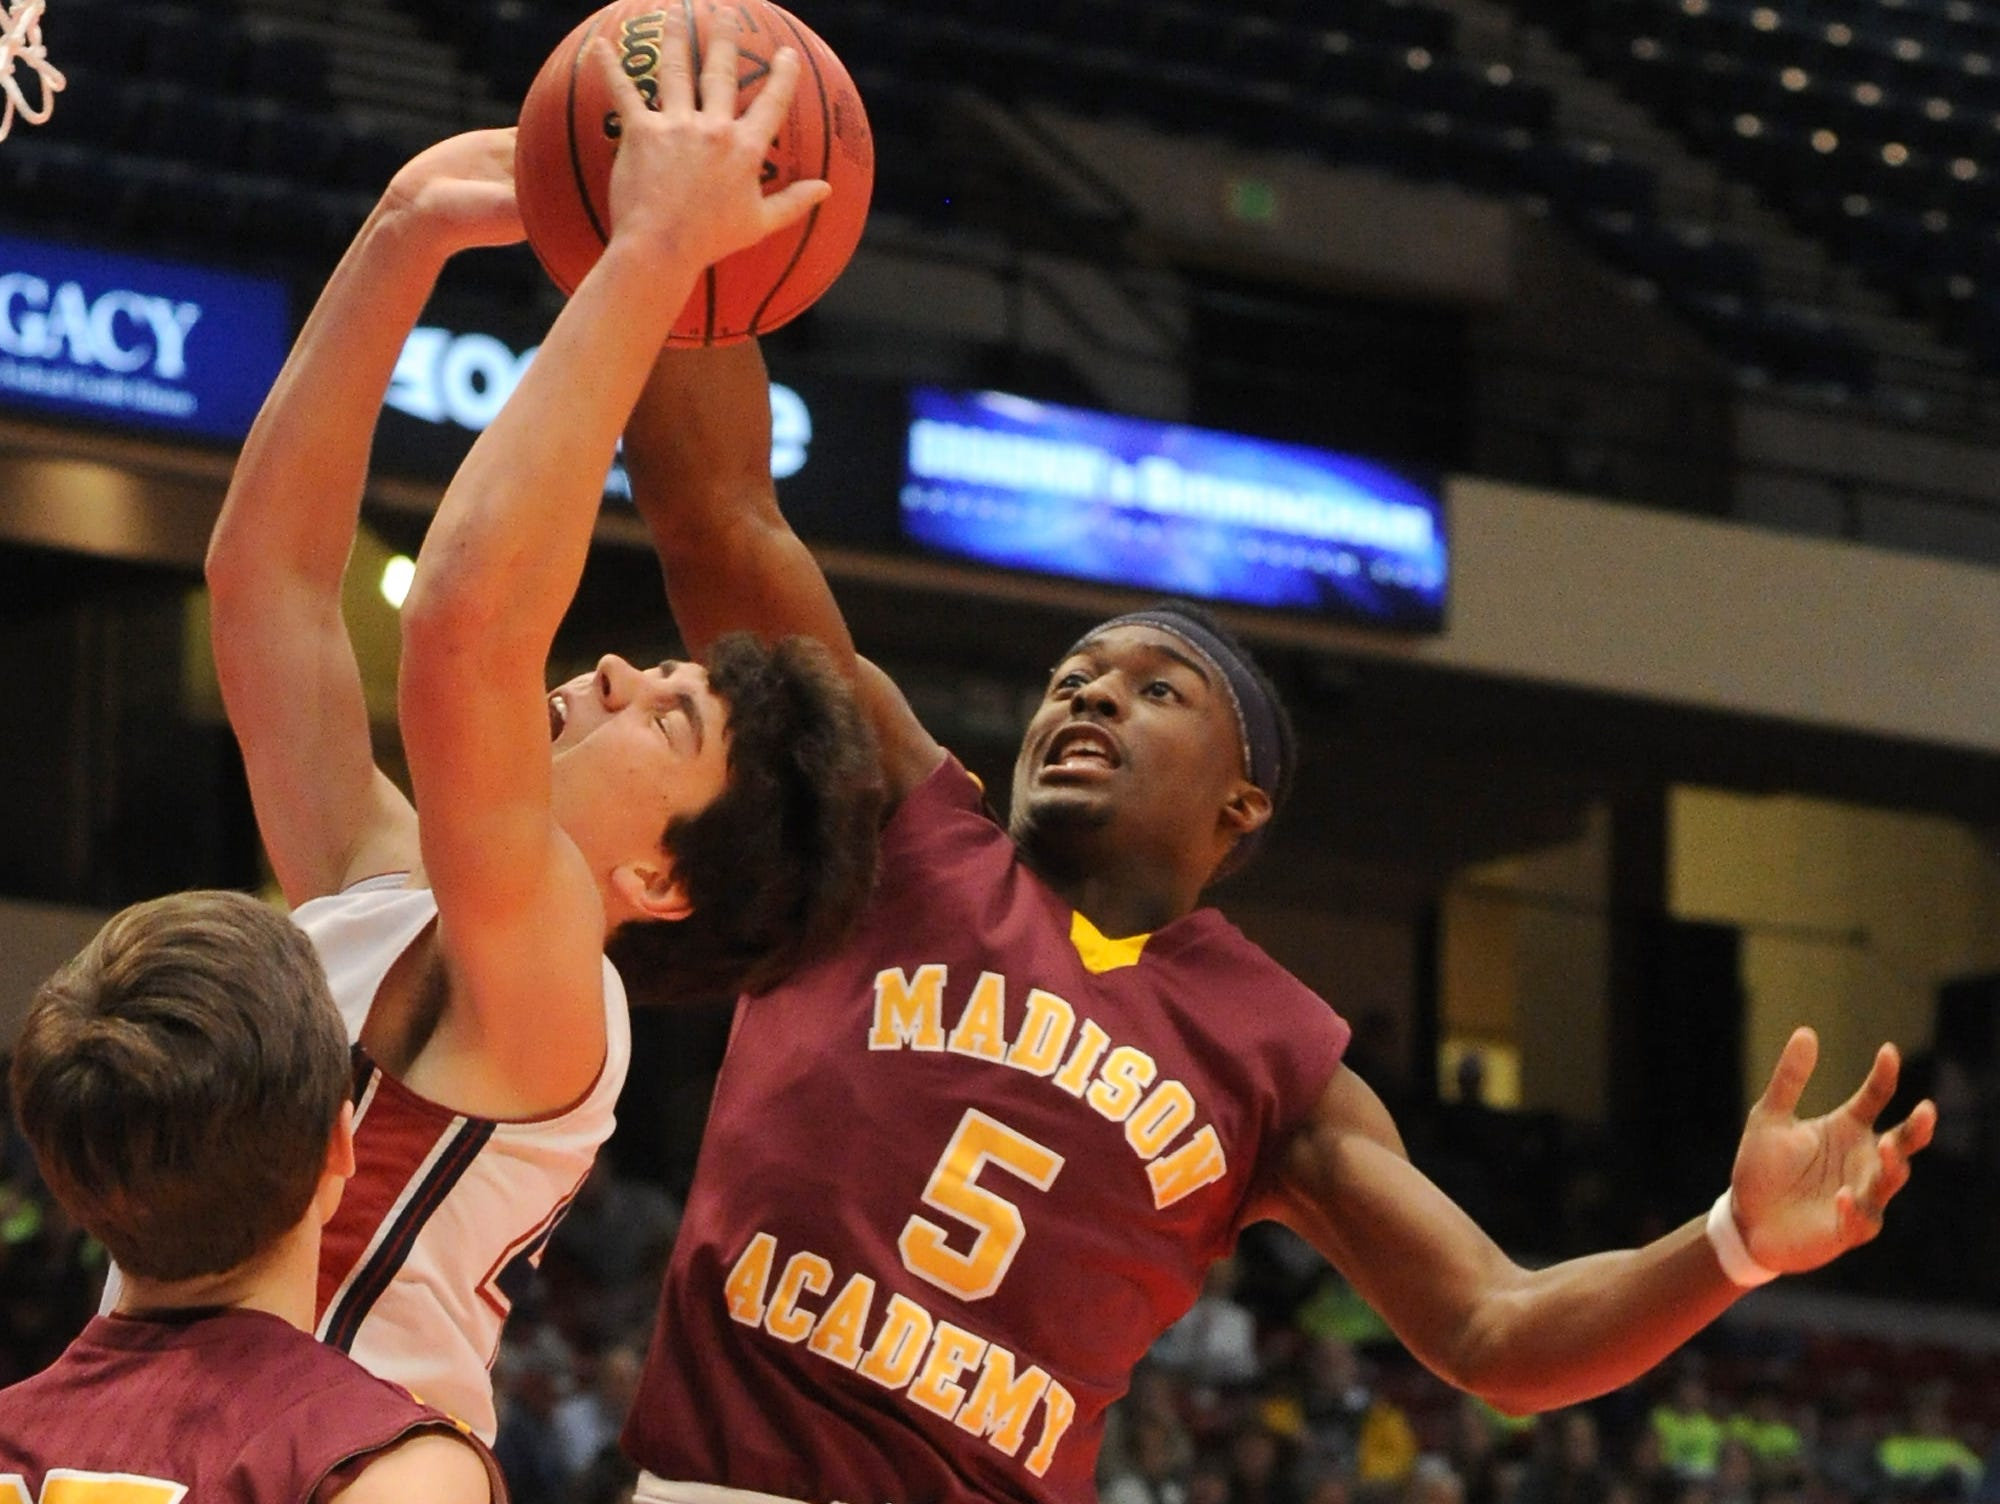 Madison Academy?s Joshua Langford blocks a shot by Montgomery Academy's Barton Lester during an AHSAA Class 3A state semifinal game on Feb. 24 in Birmingham, Ala. Madison Academy won, 66-55.